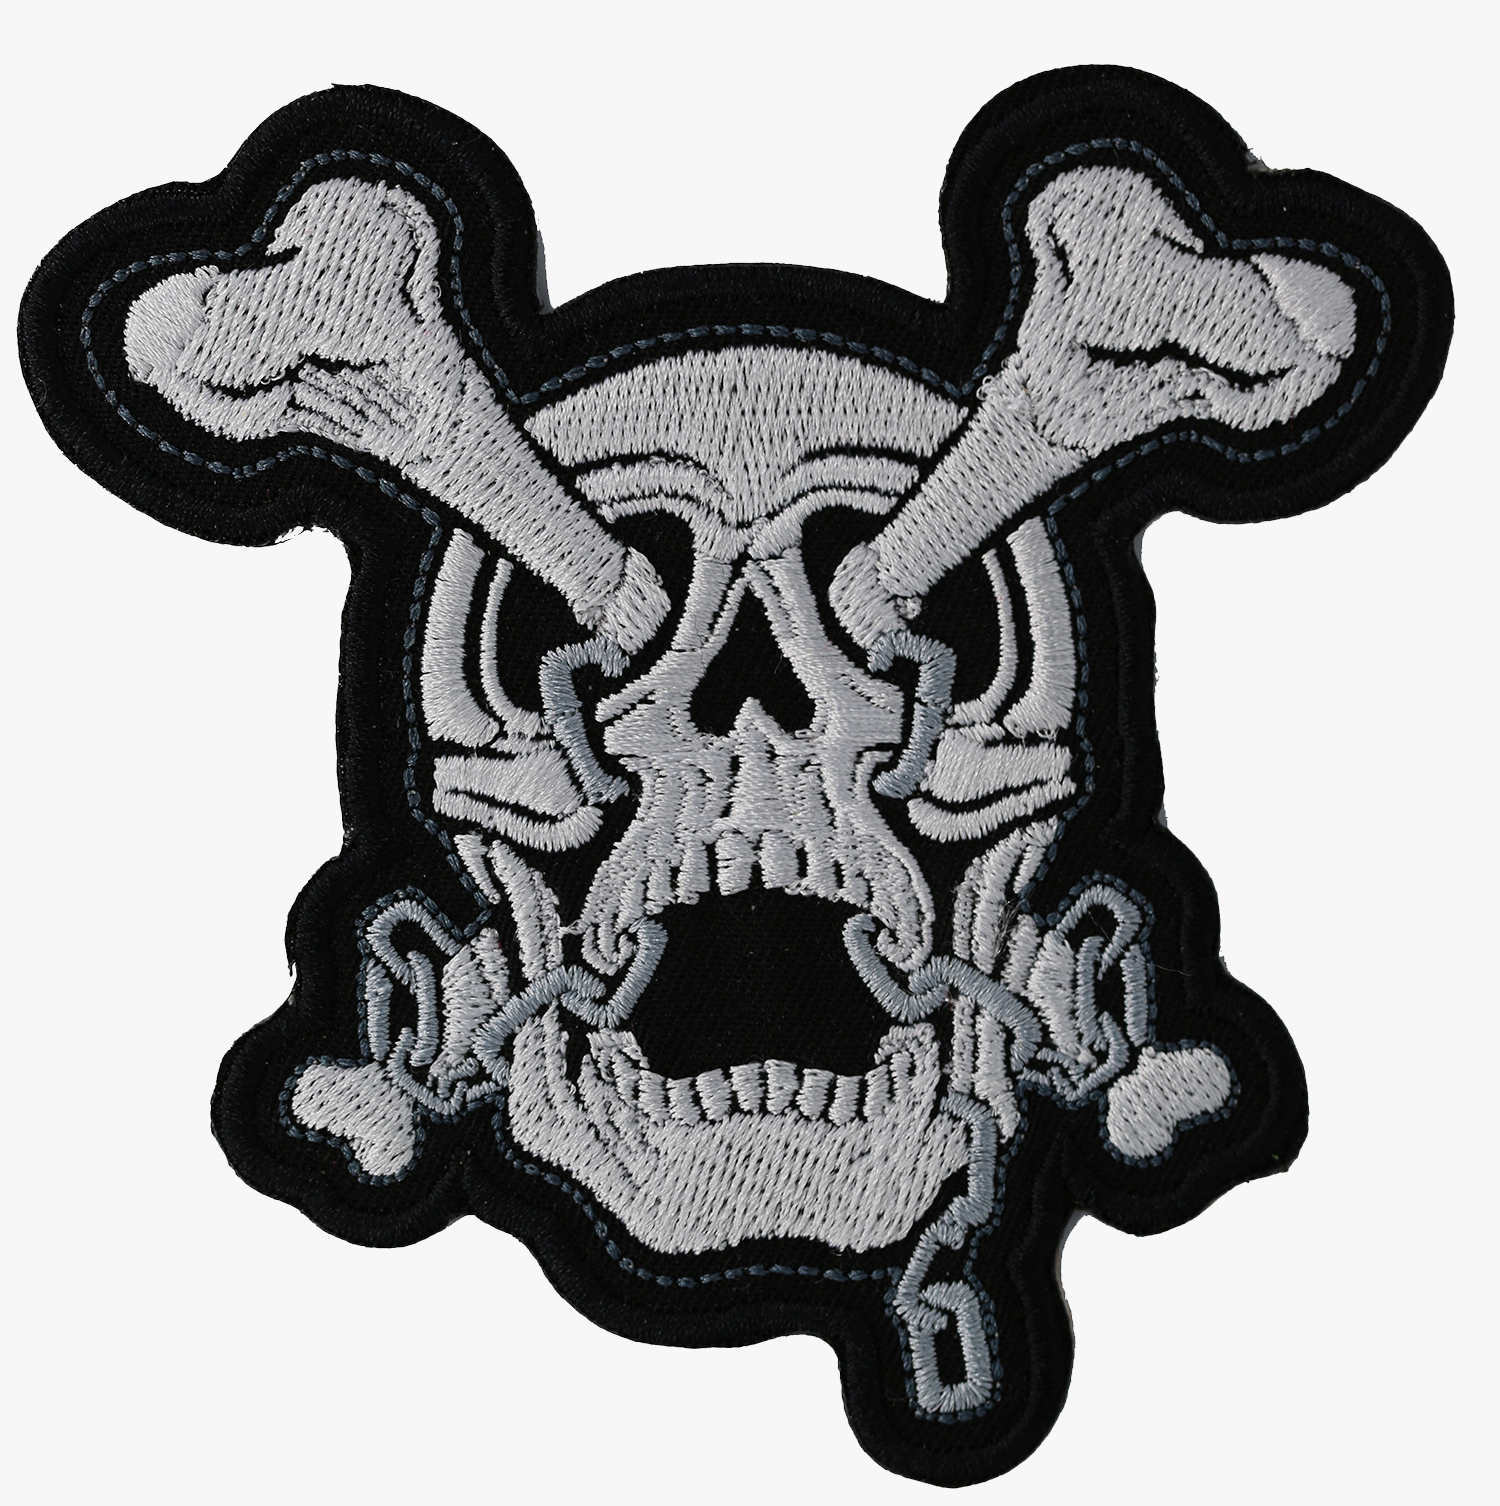 NEW CROSS BONES SKULL Biker Vest Embroidered Patch